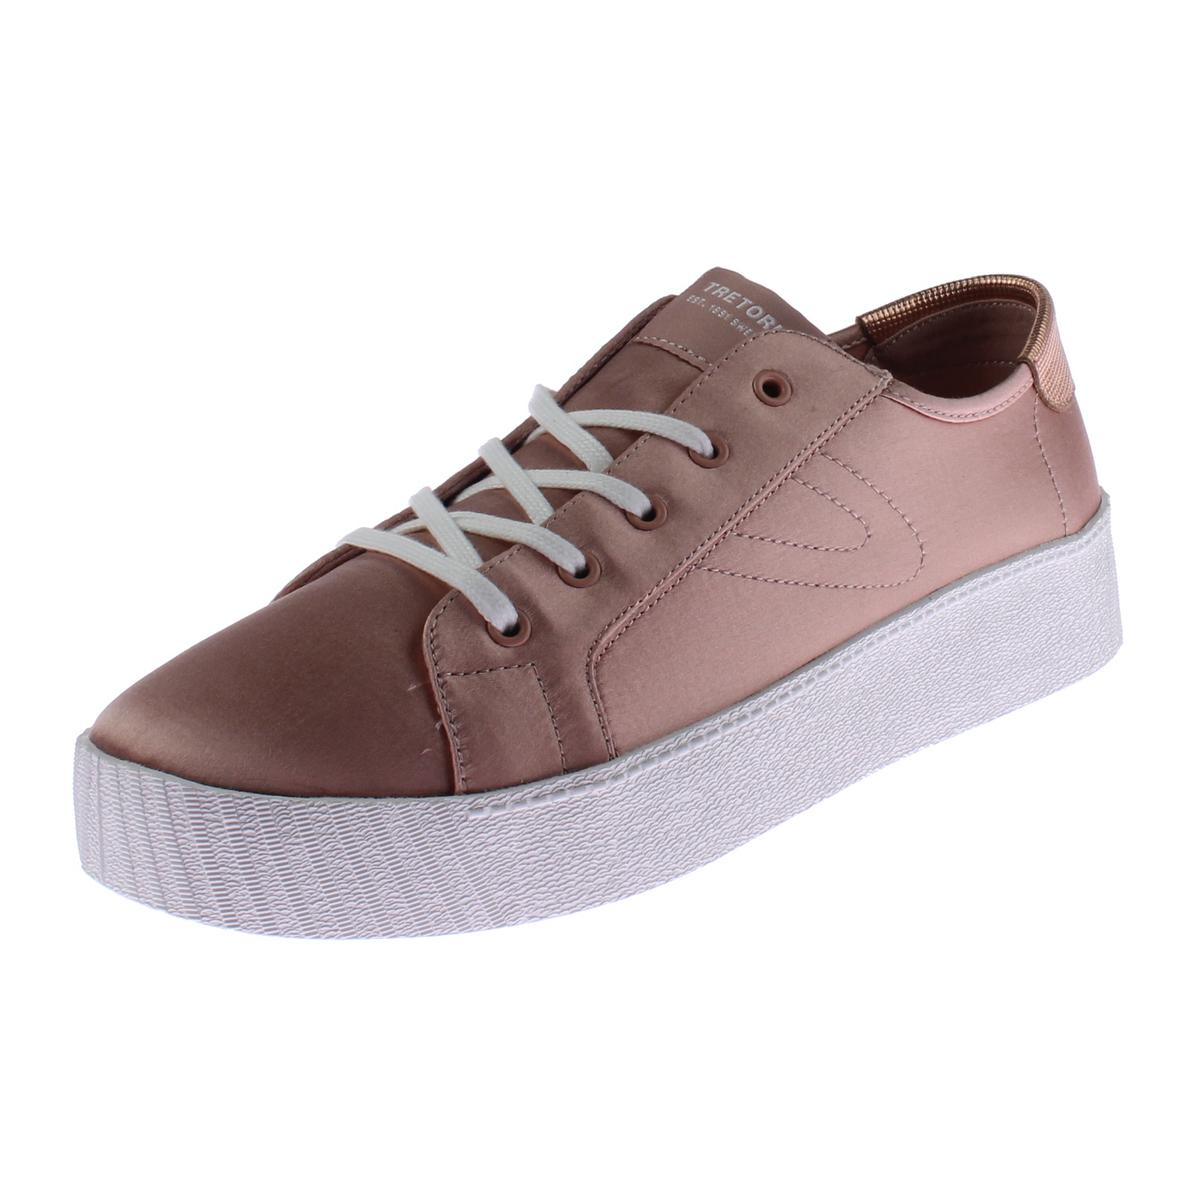 Tretorn Womens Blaire7 Satin Casual Fashion Sneakers by Tretorn